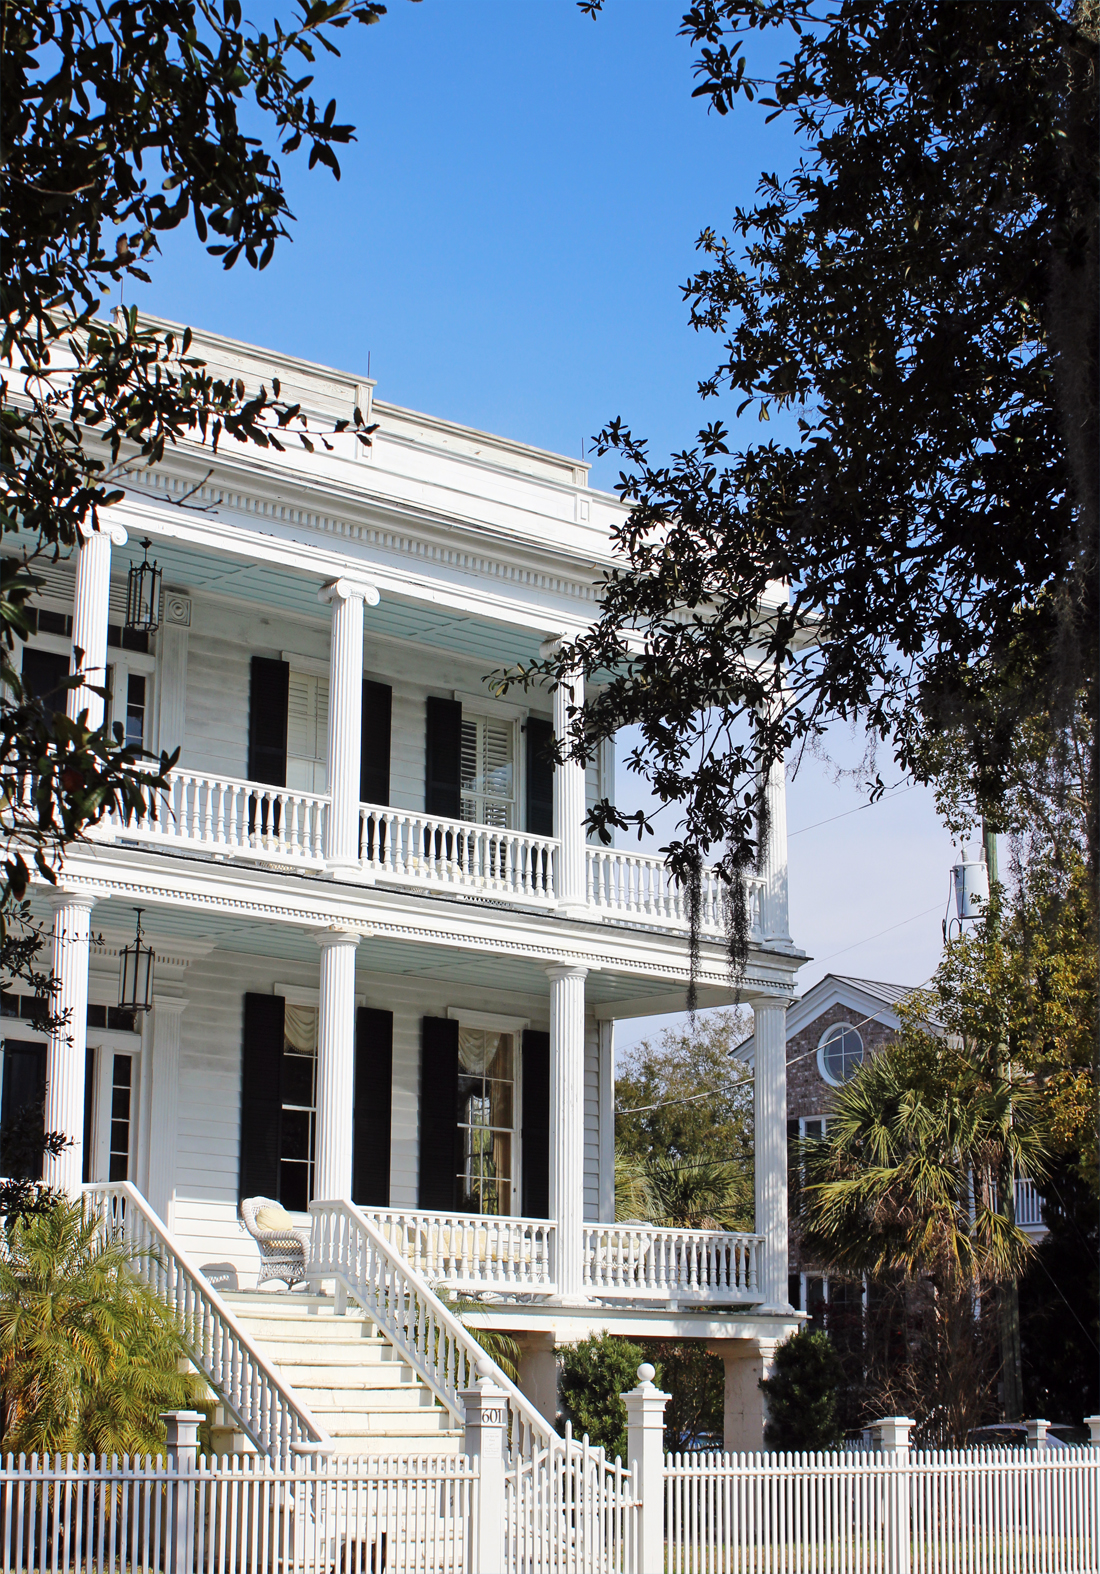 House in downtown beaufort south carolina by winterface for Beaufort sc architects